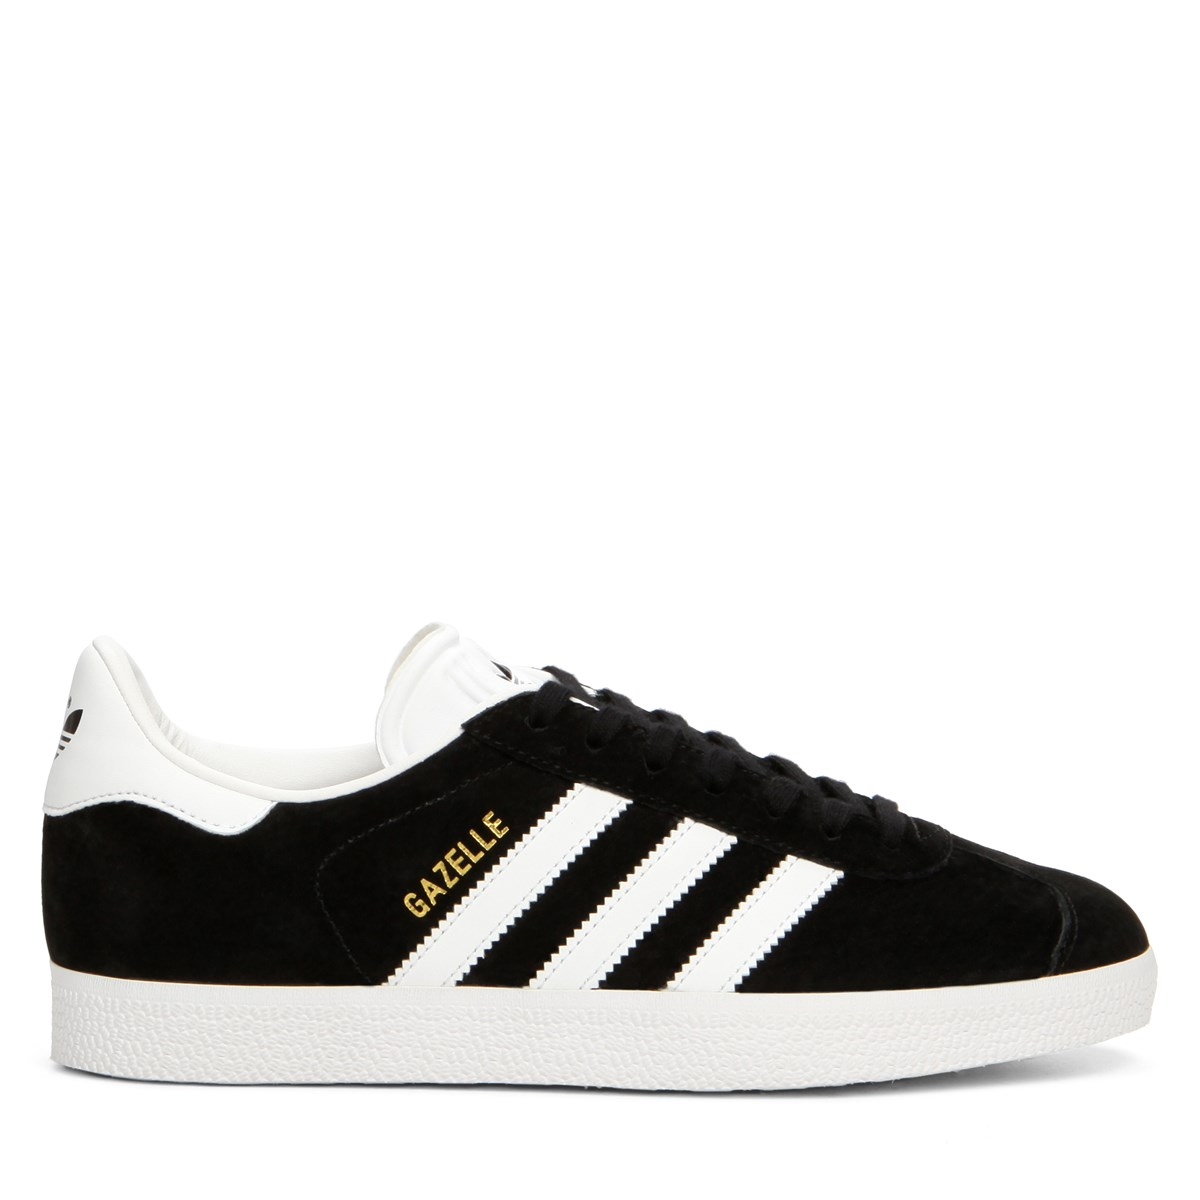 Women's Gazelle Sneakers in Black